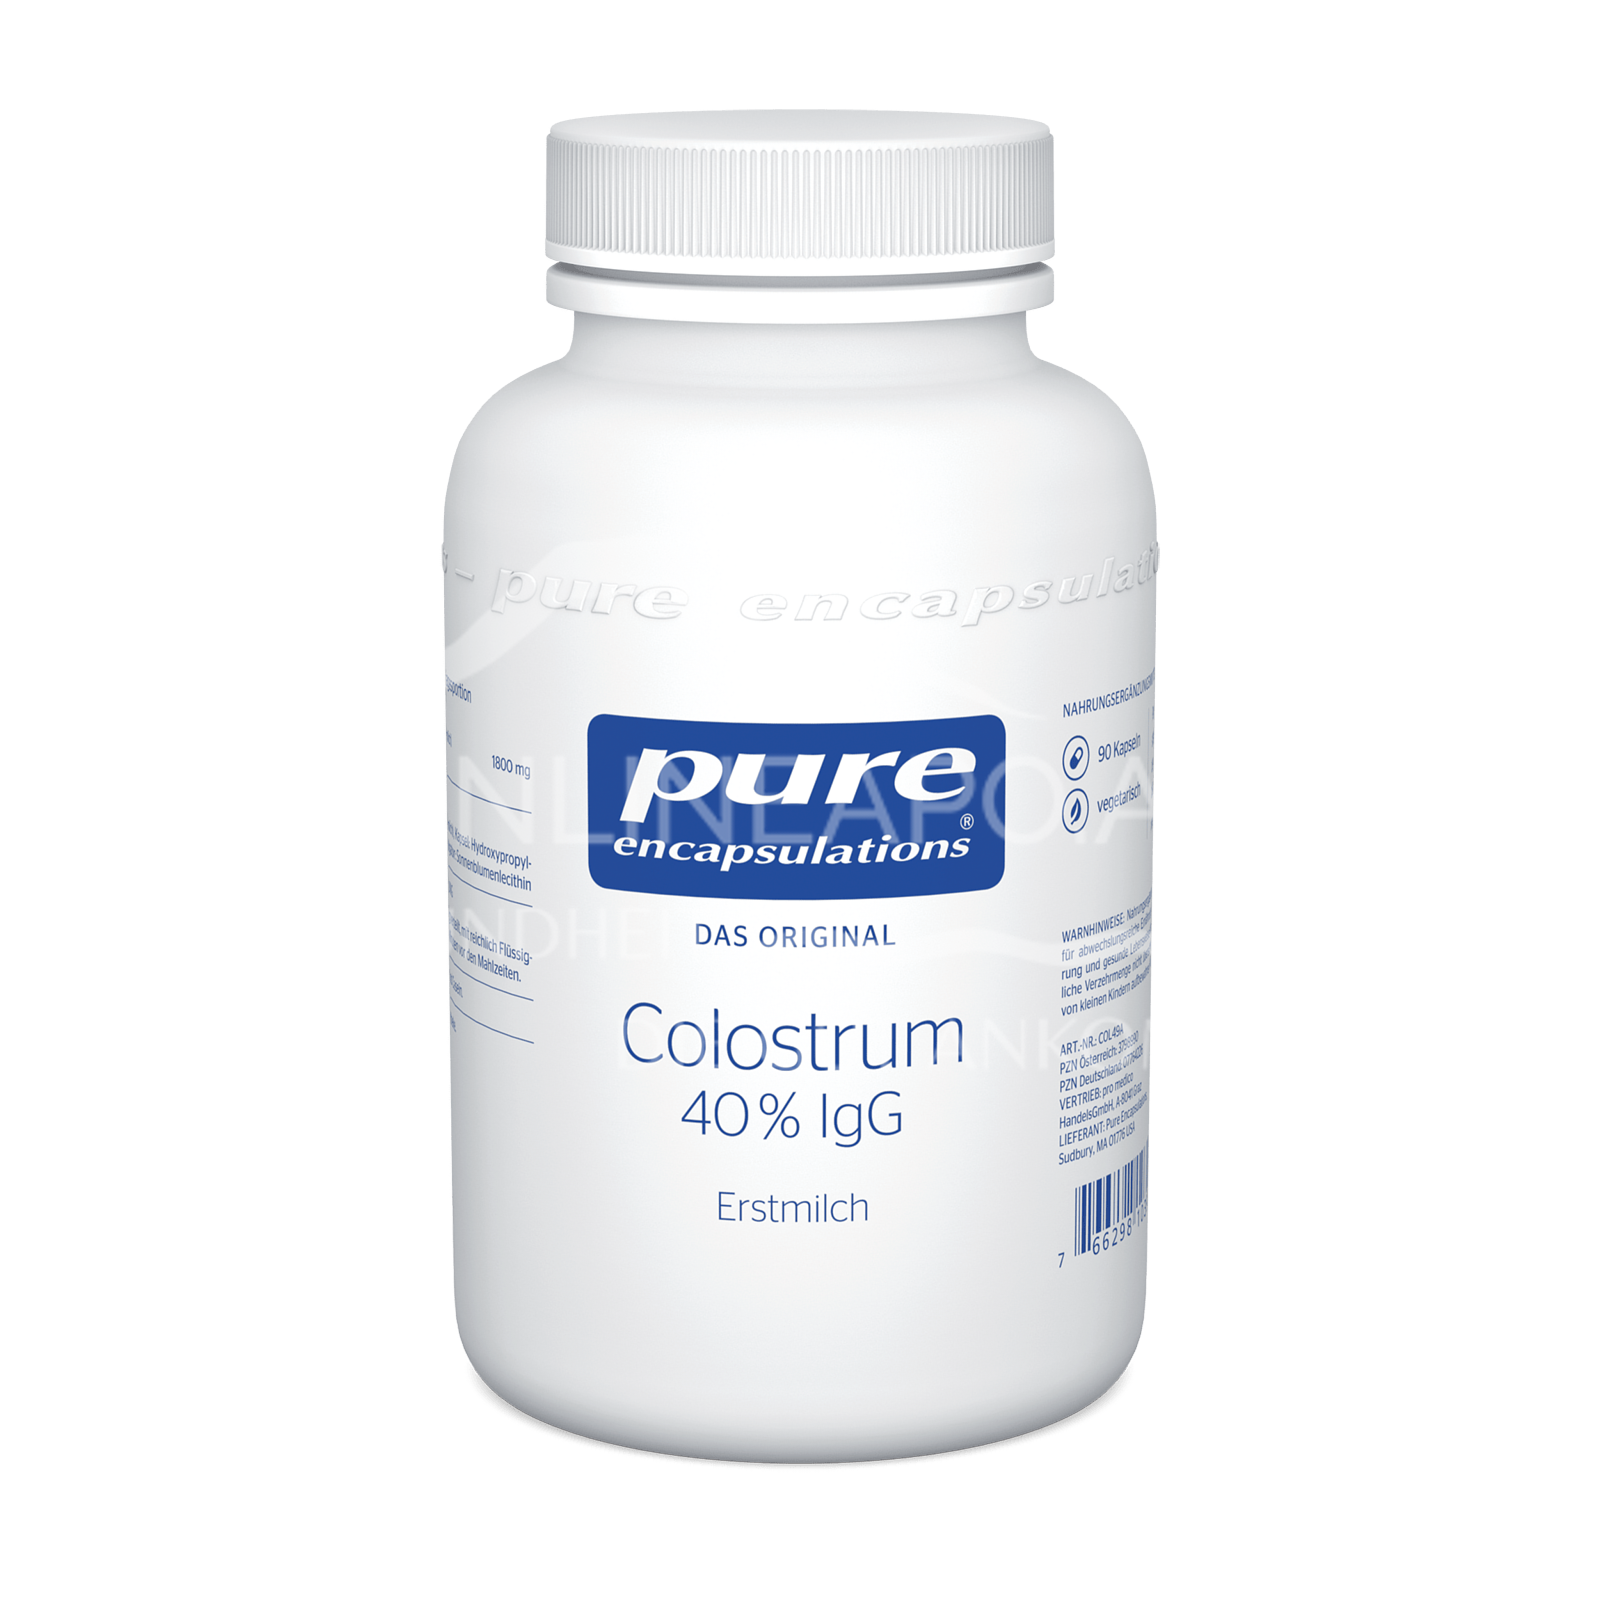 pure encapsulations® Colostrum 40 % IgG